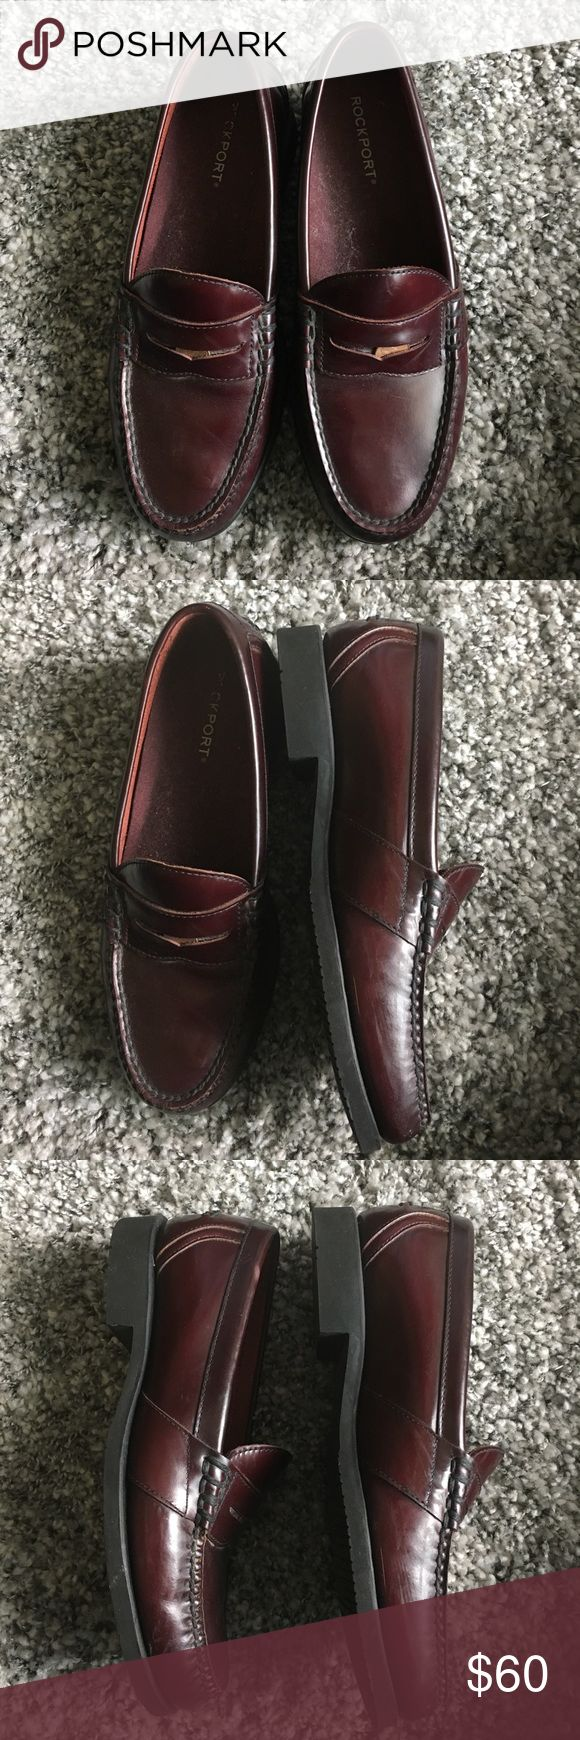 Men's Brown Loafers Dark cherry brown loafers leather Rockport Shoes Loafers & Slip-Ons